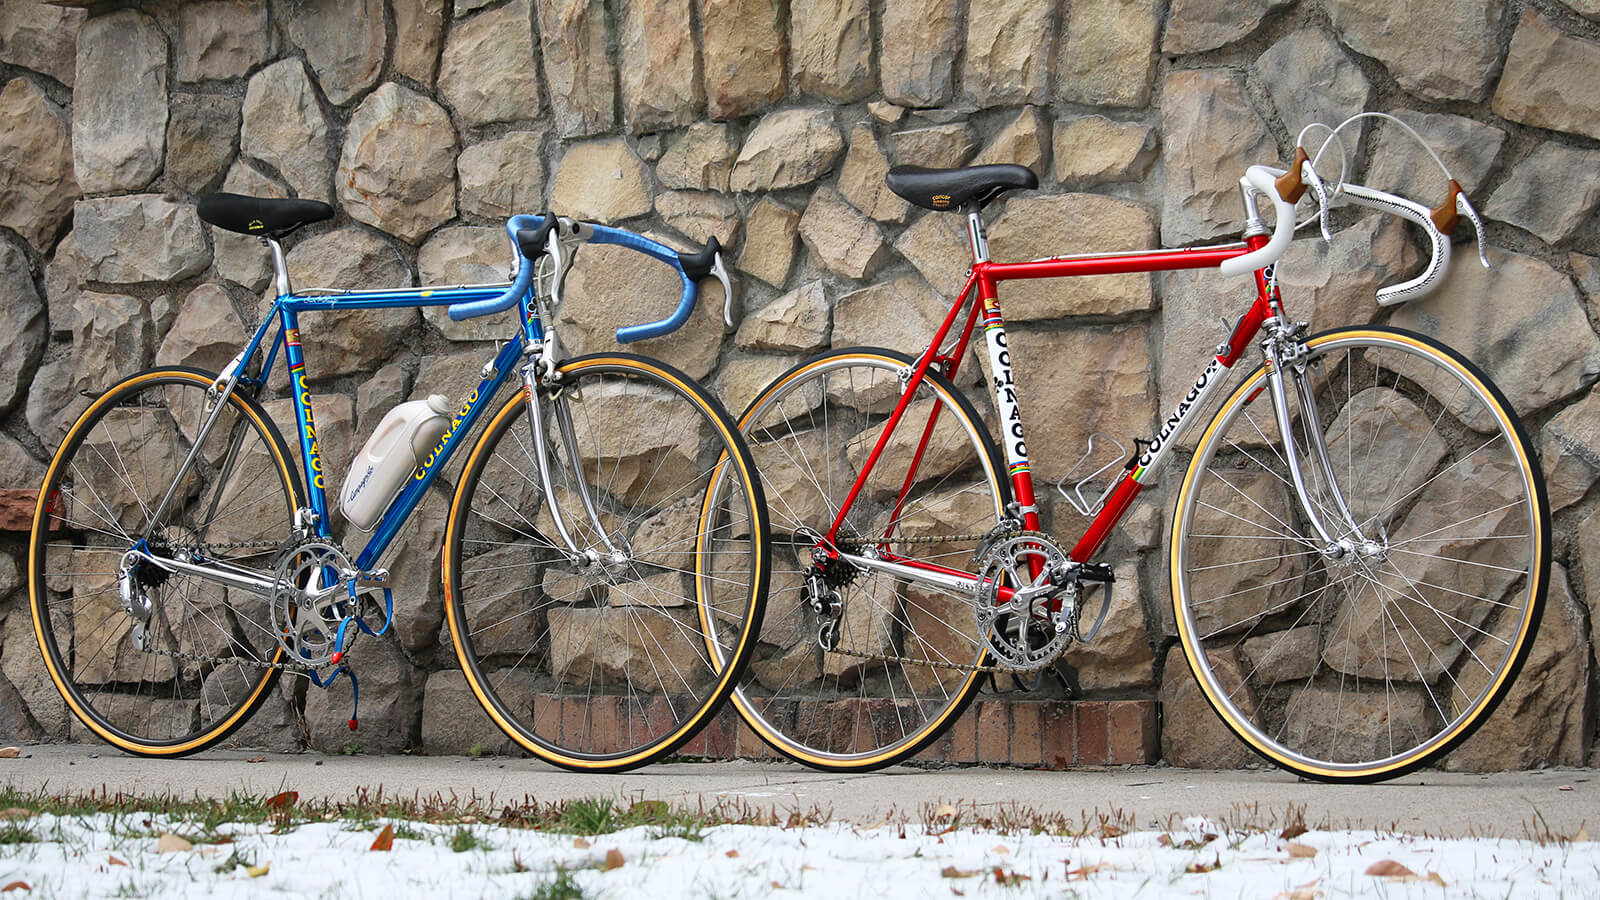 Two Colnago Vintage Road Bikes - Contender Bicycles